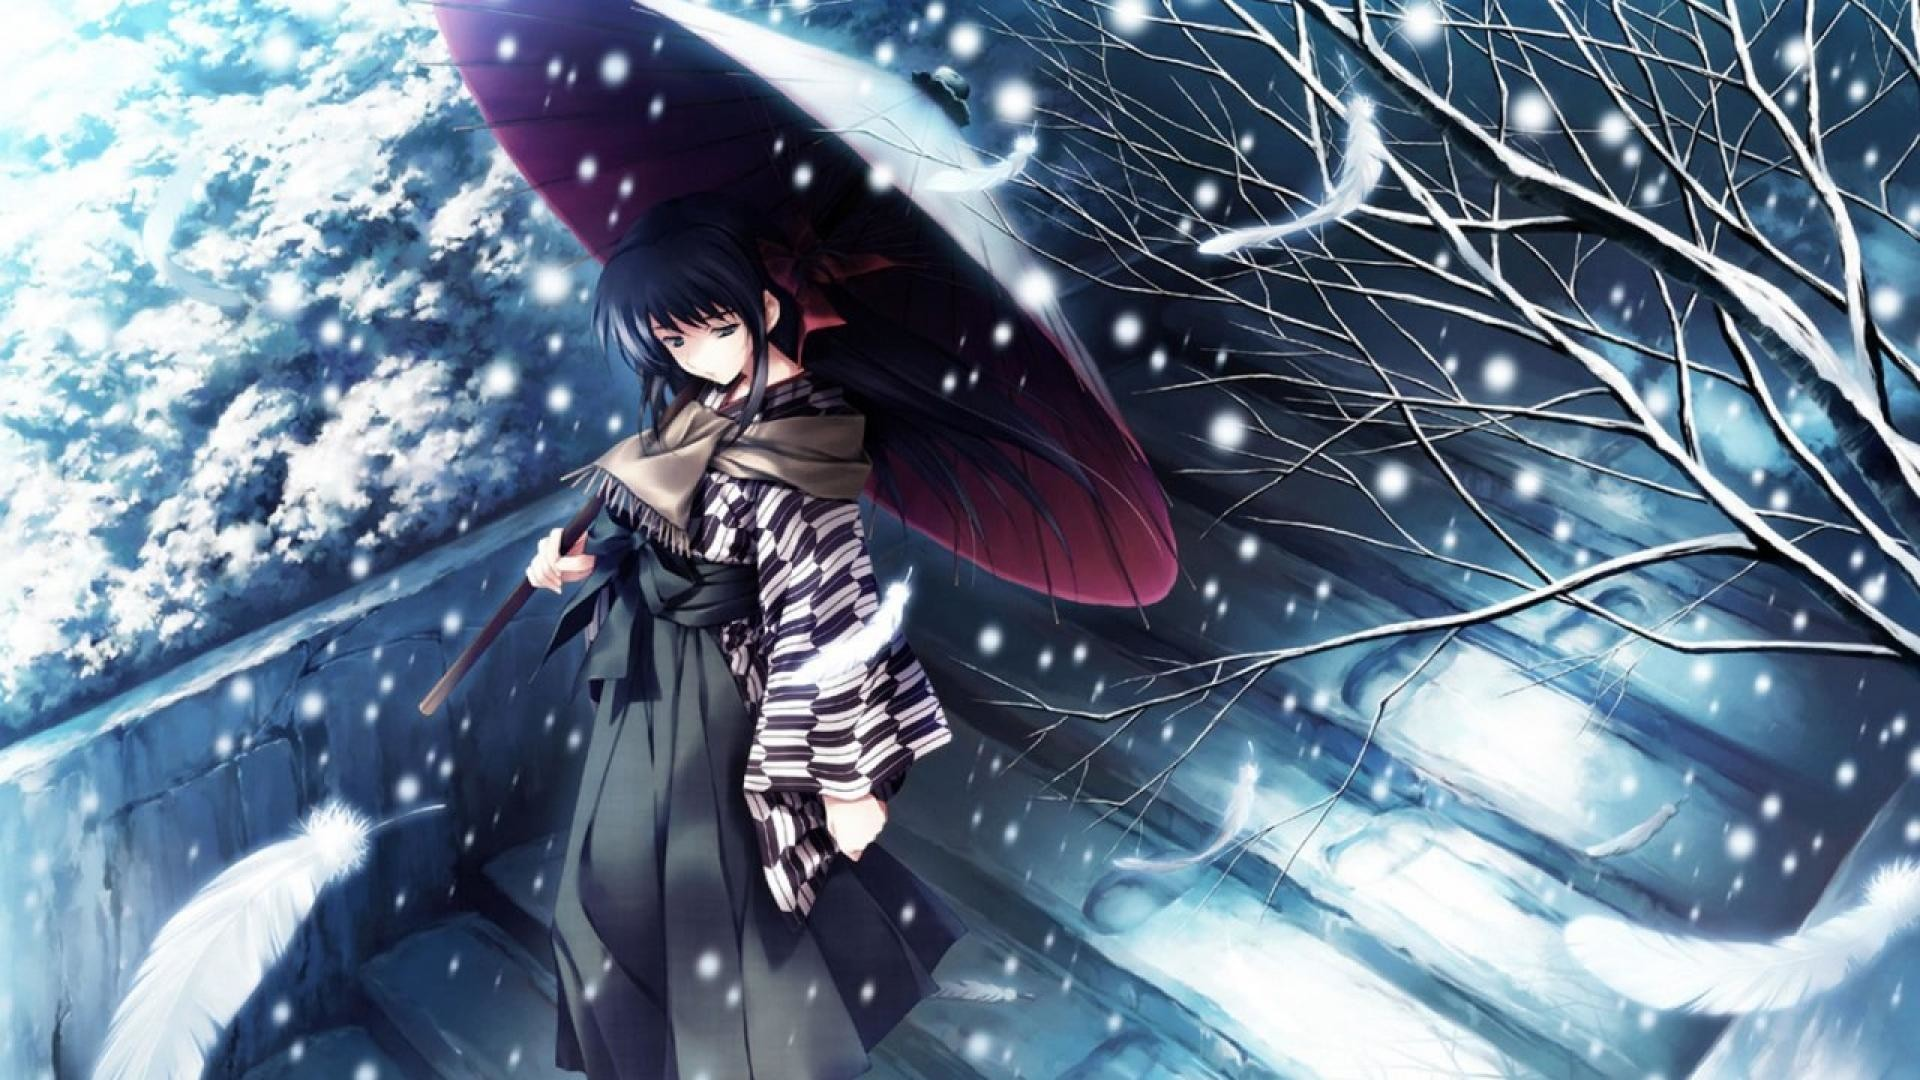 Anime Wallpapers Hd Free Download Atulhost